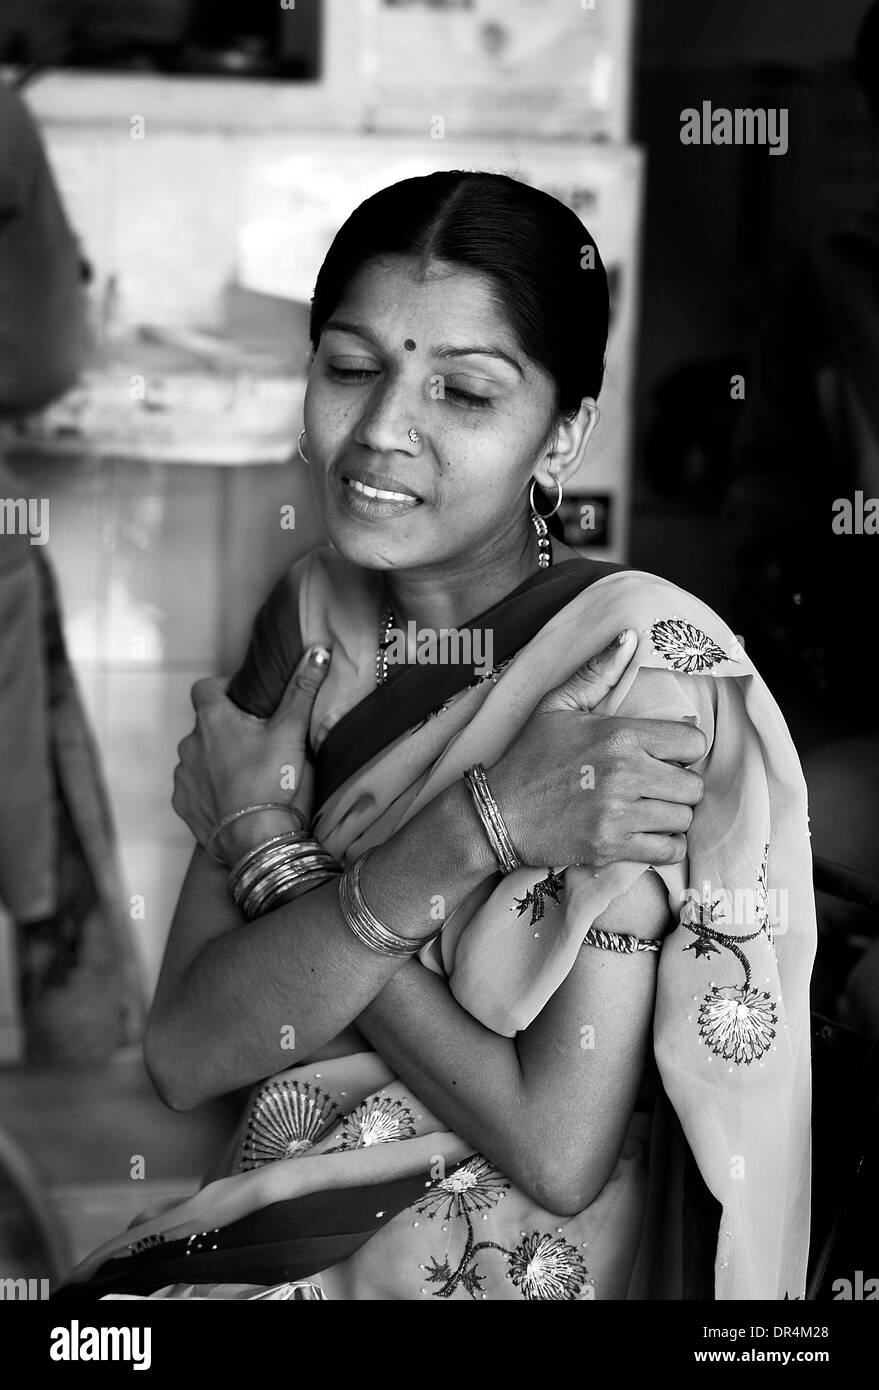 Jan 24, 2009 - DOTS centre,Ahmedabad, Gujarat, India - CHAMCHAMBEN SHARMA shrugs in pain after she is injected with the TB medicine she suffers from MDR-TB,She is enable to come to the fact that though regular with her CAT I and II regimes she has MDR-TB (Credit Image: © Subhash Sharma/ZUMA Press) - Stock Image